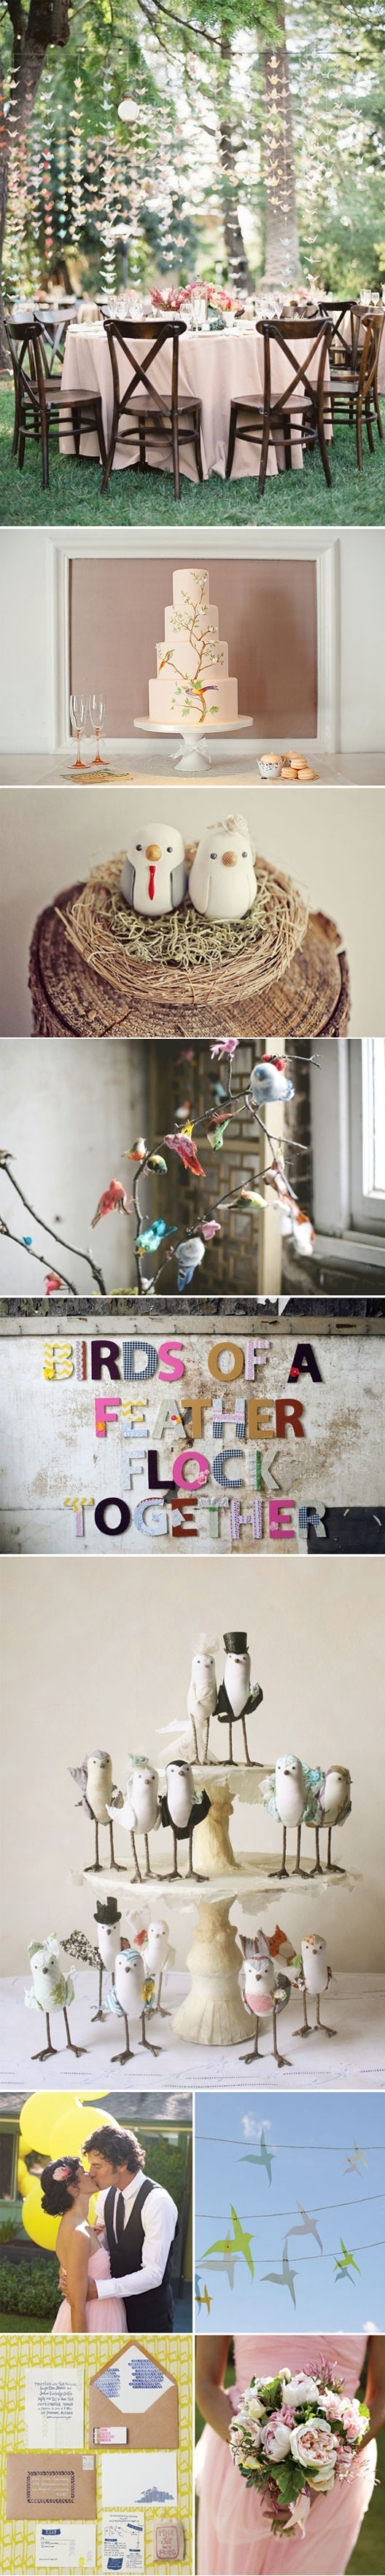 The Birds Theme.  Love the bouquet.  Love the origami bird curtain.  If I started now...